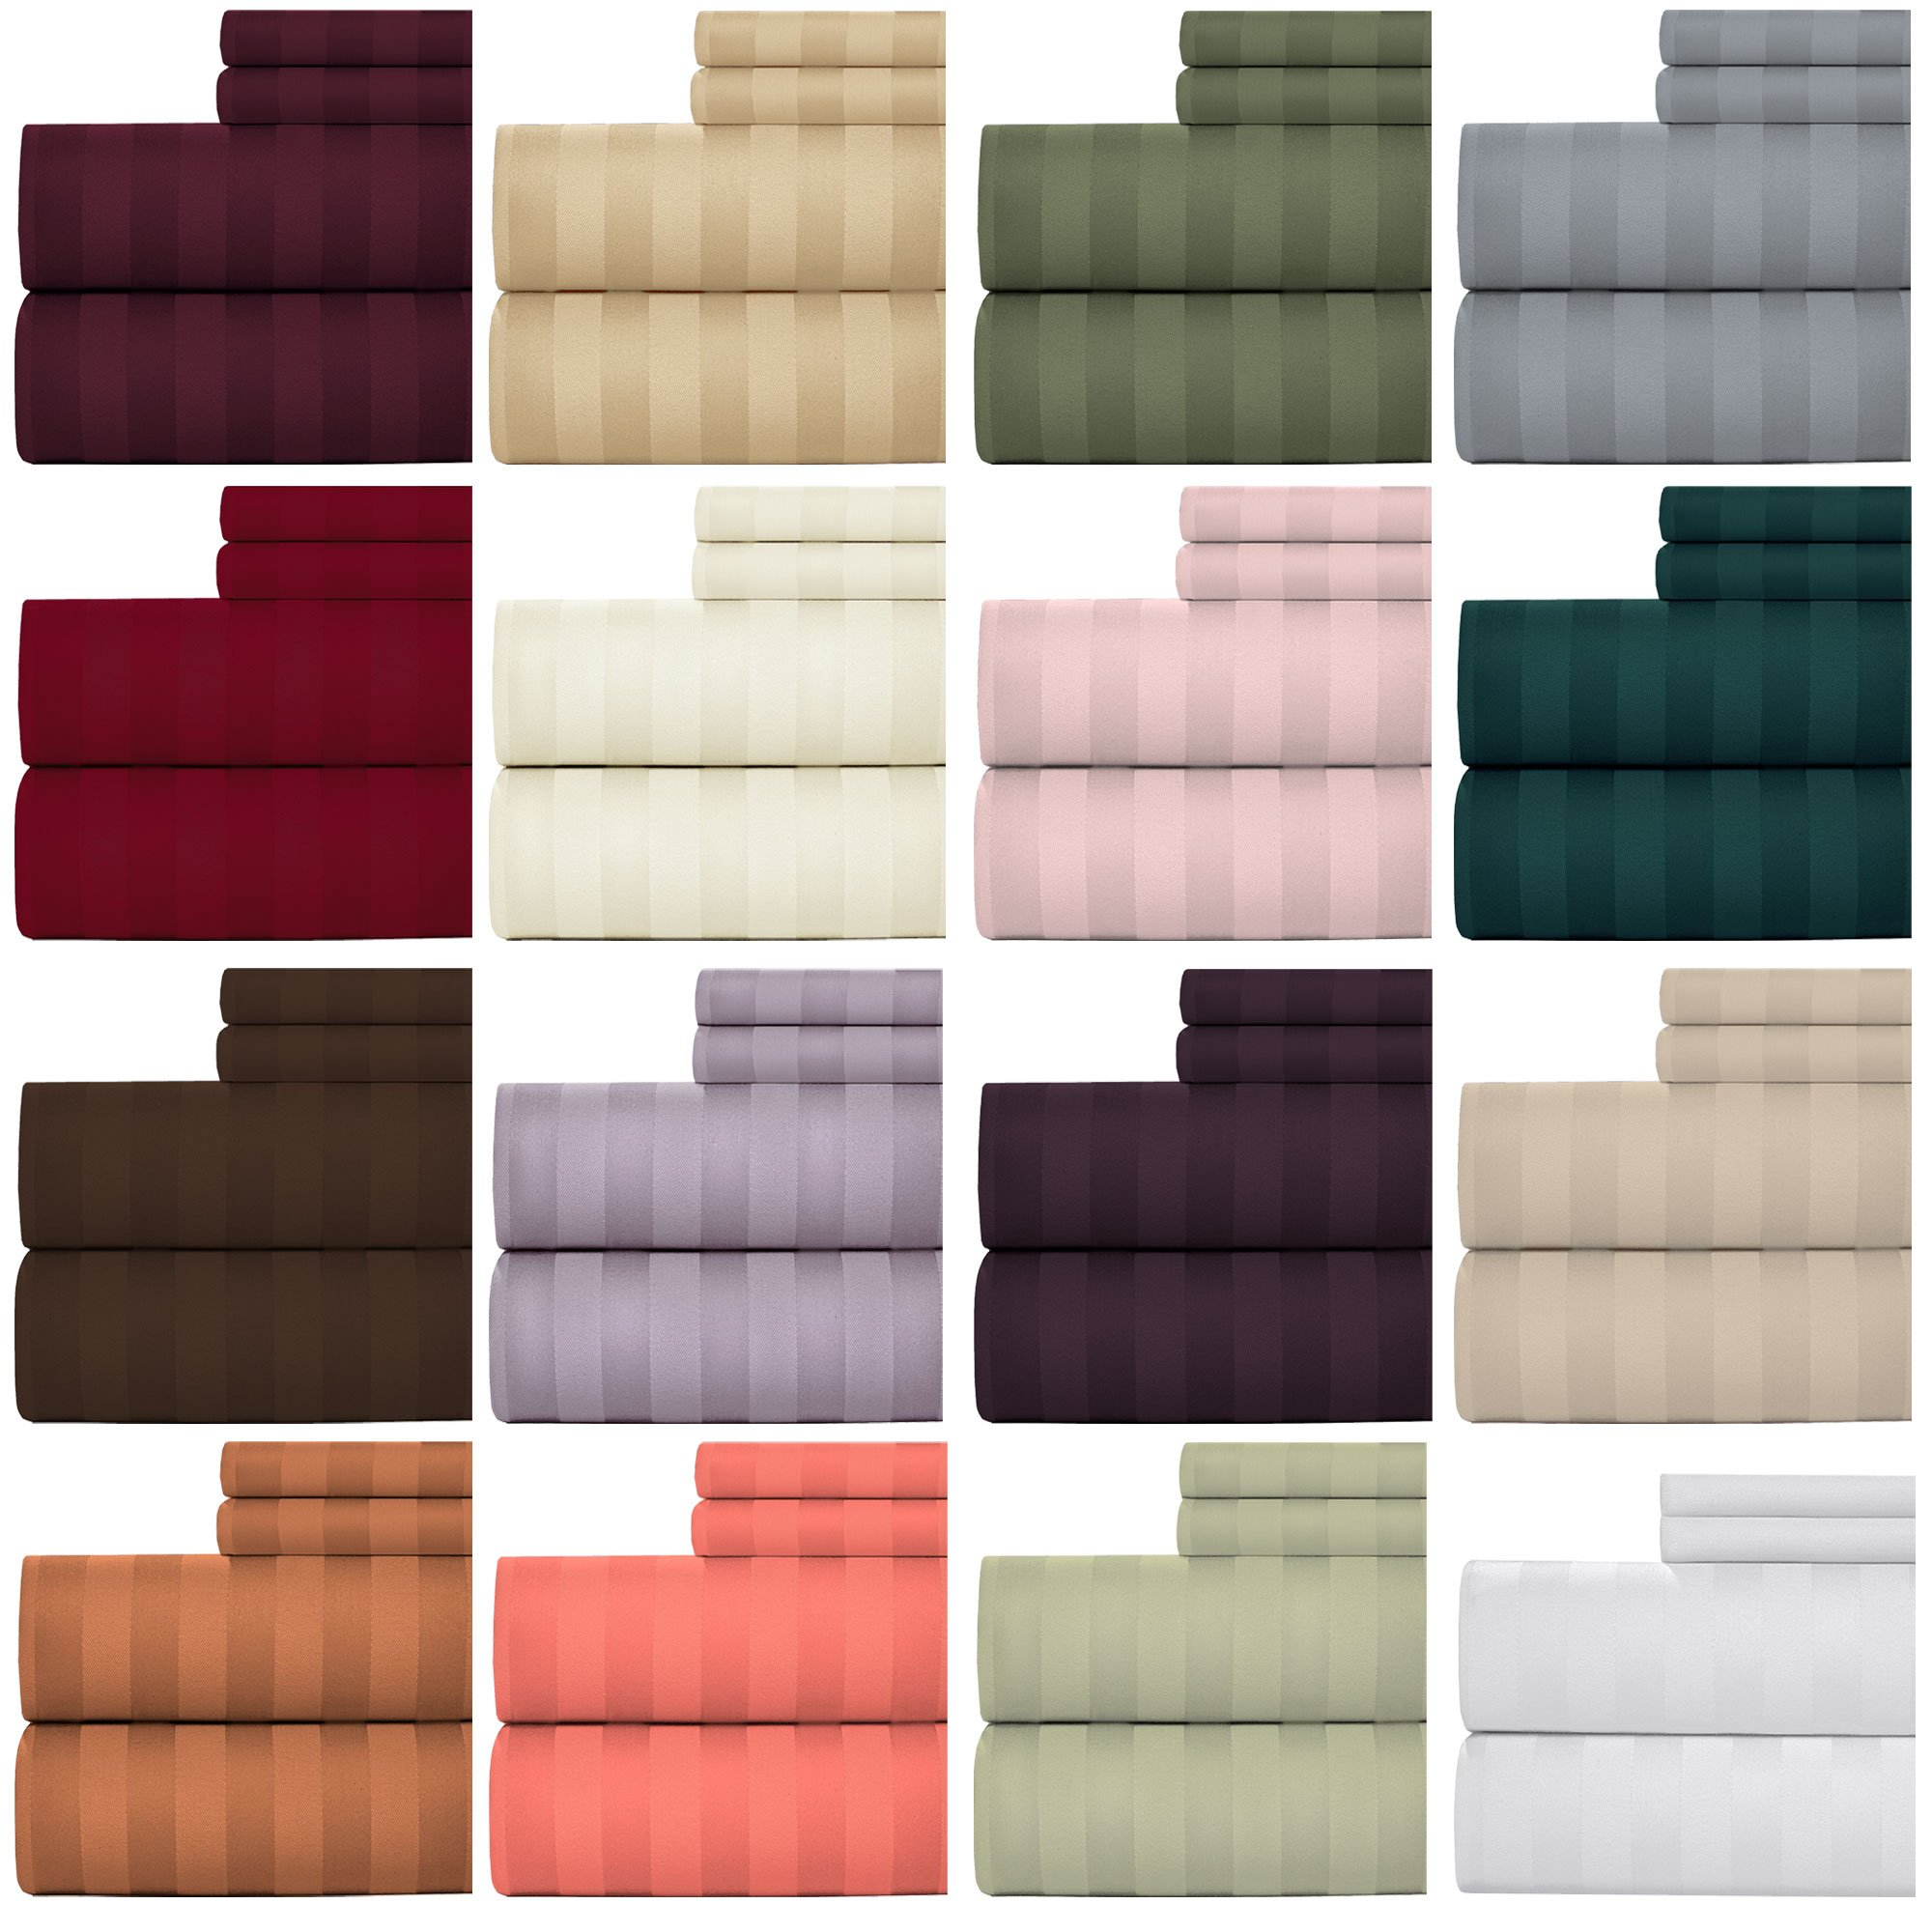 Weavely Bedsheet 100% Cotton 600 Thread Count Damask Stripe Sheet Set, 4 Piece Hotel Quality Sheets, 15 inch Elastic Deep Pocket Fitted Sheet (King, Plum)